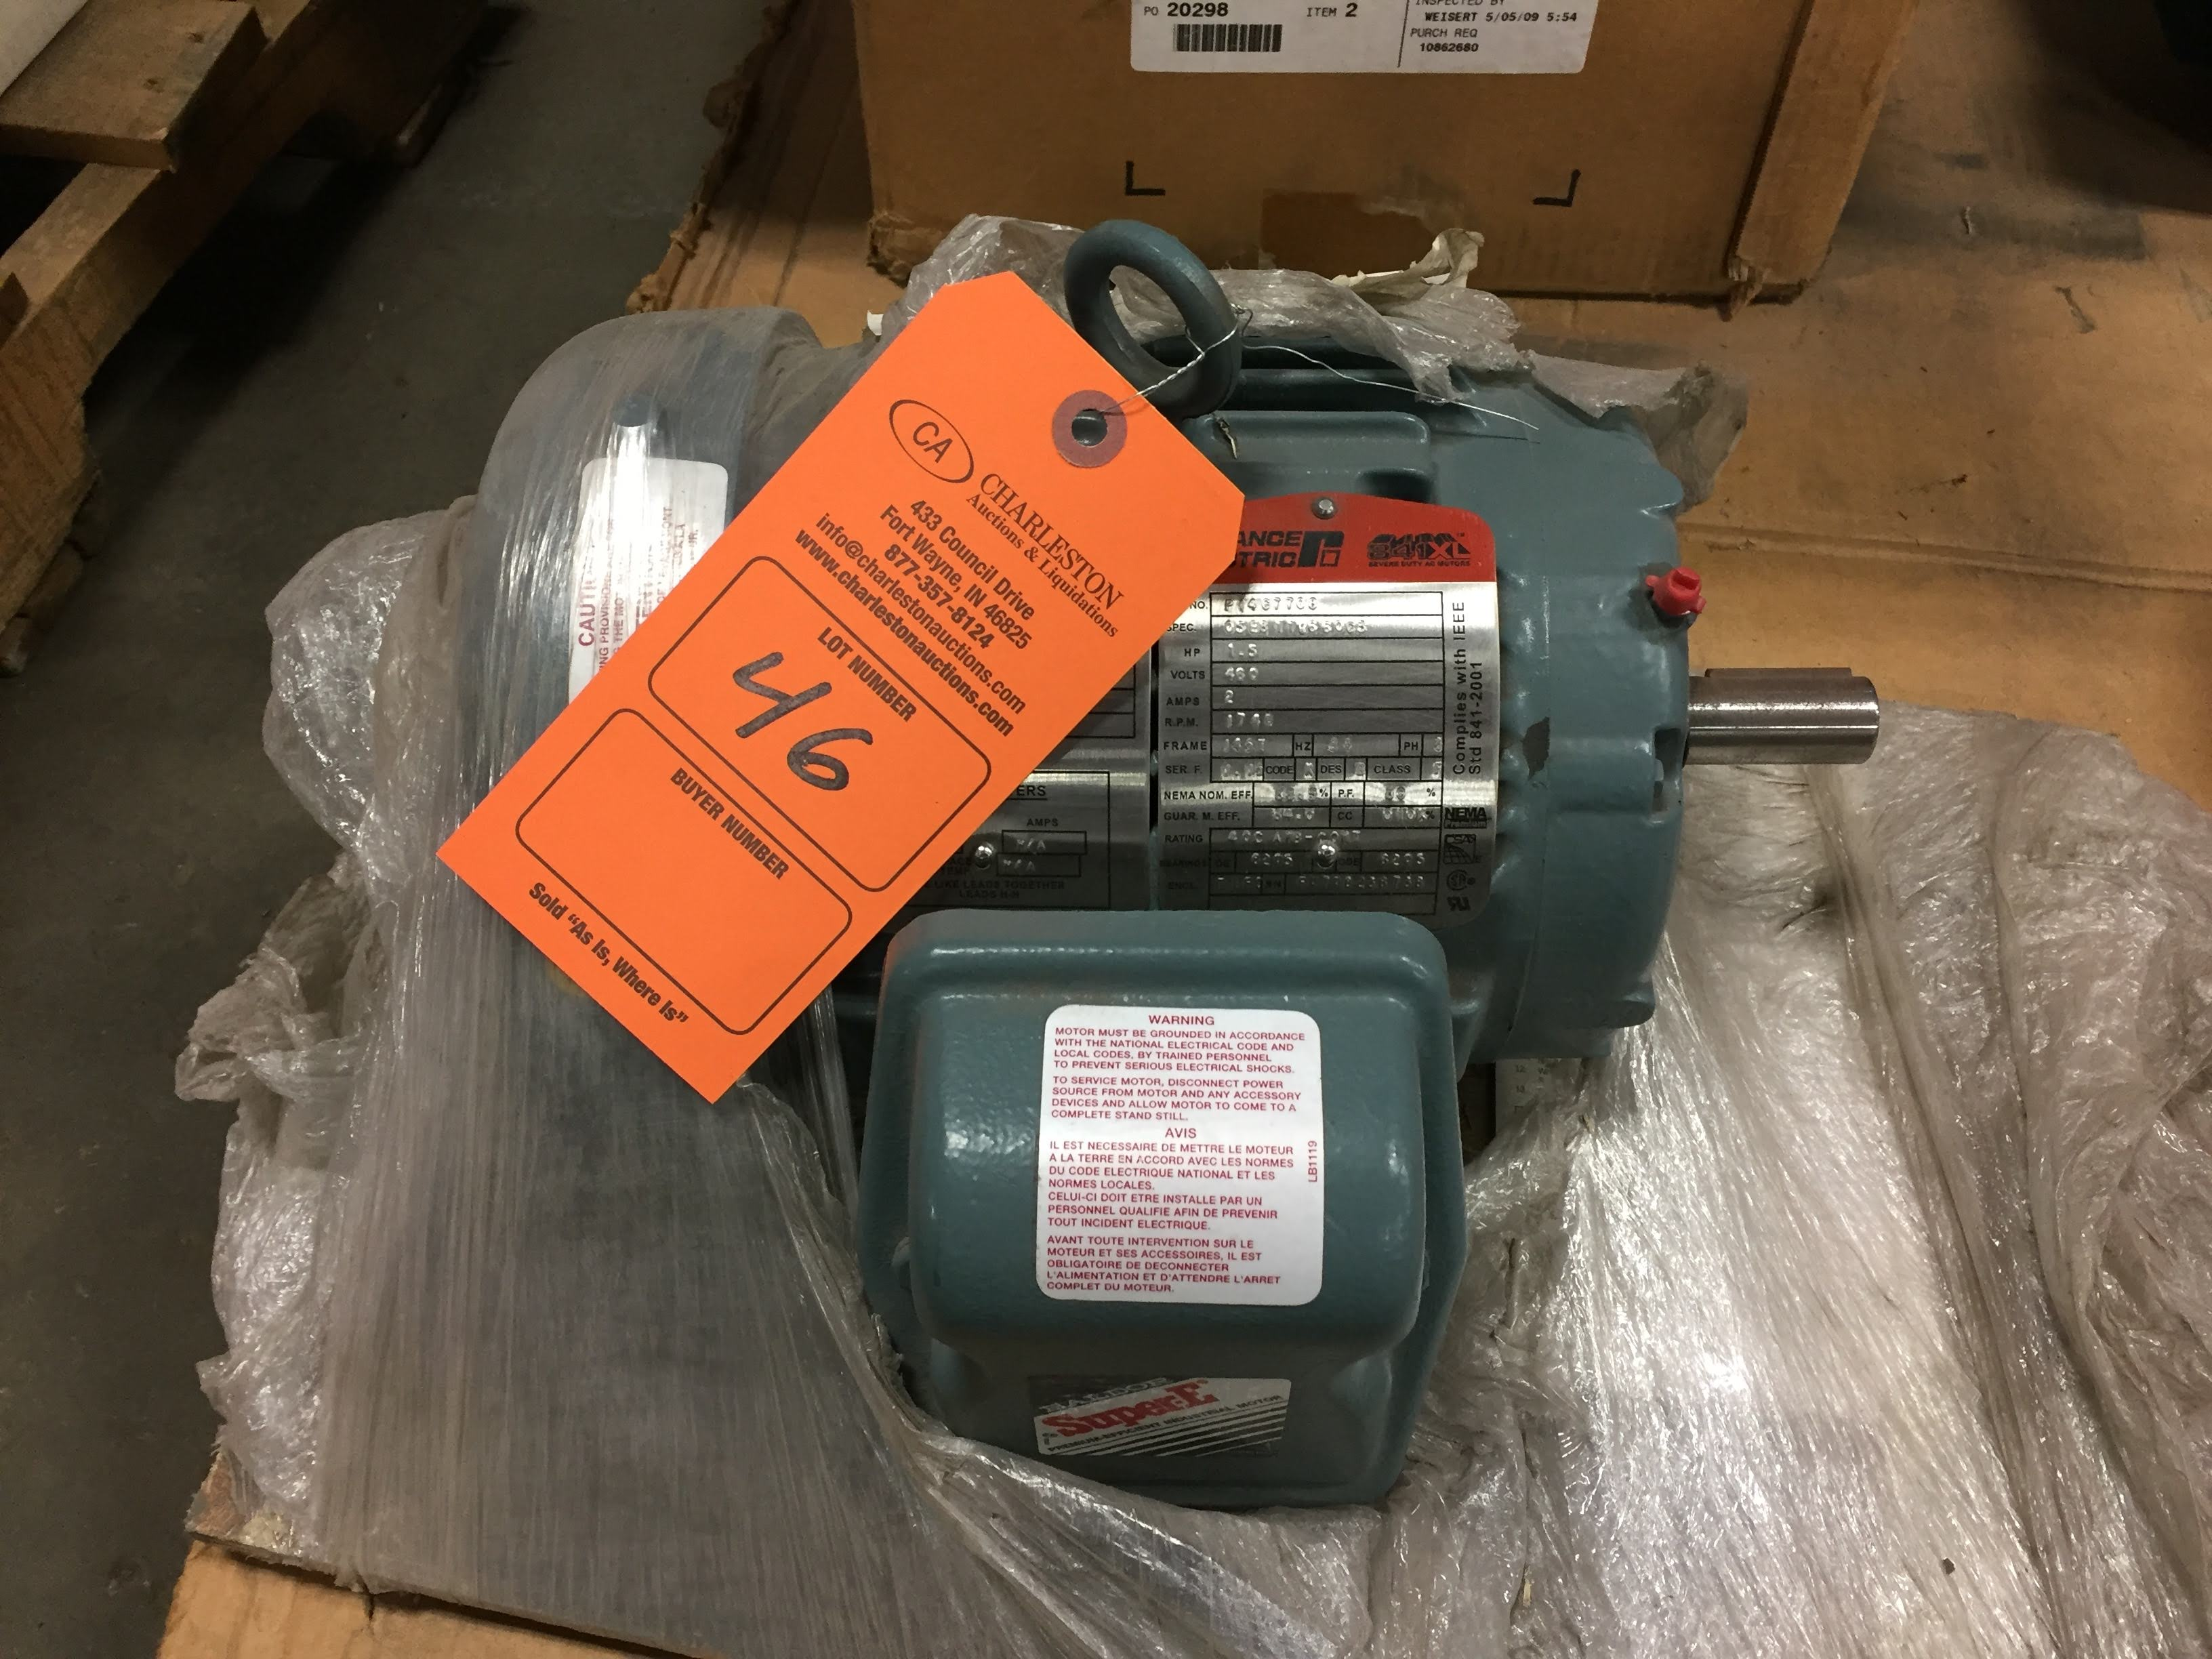 Lot 46 - (1) *NEW* Reliance Electric P14G7708 Severe Duty Motor 1.5HP 1740RPM 2AMP 460V *NEW*